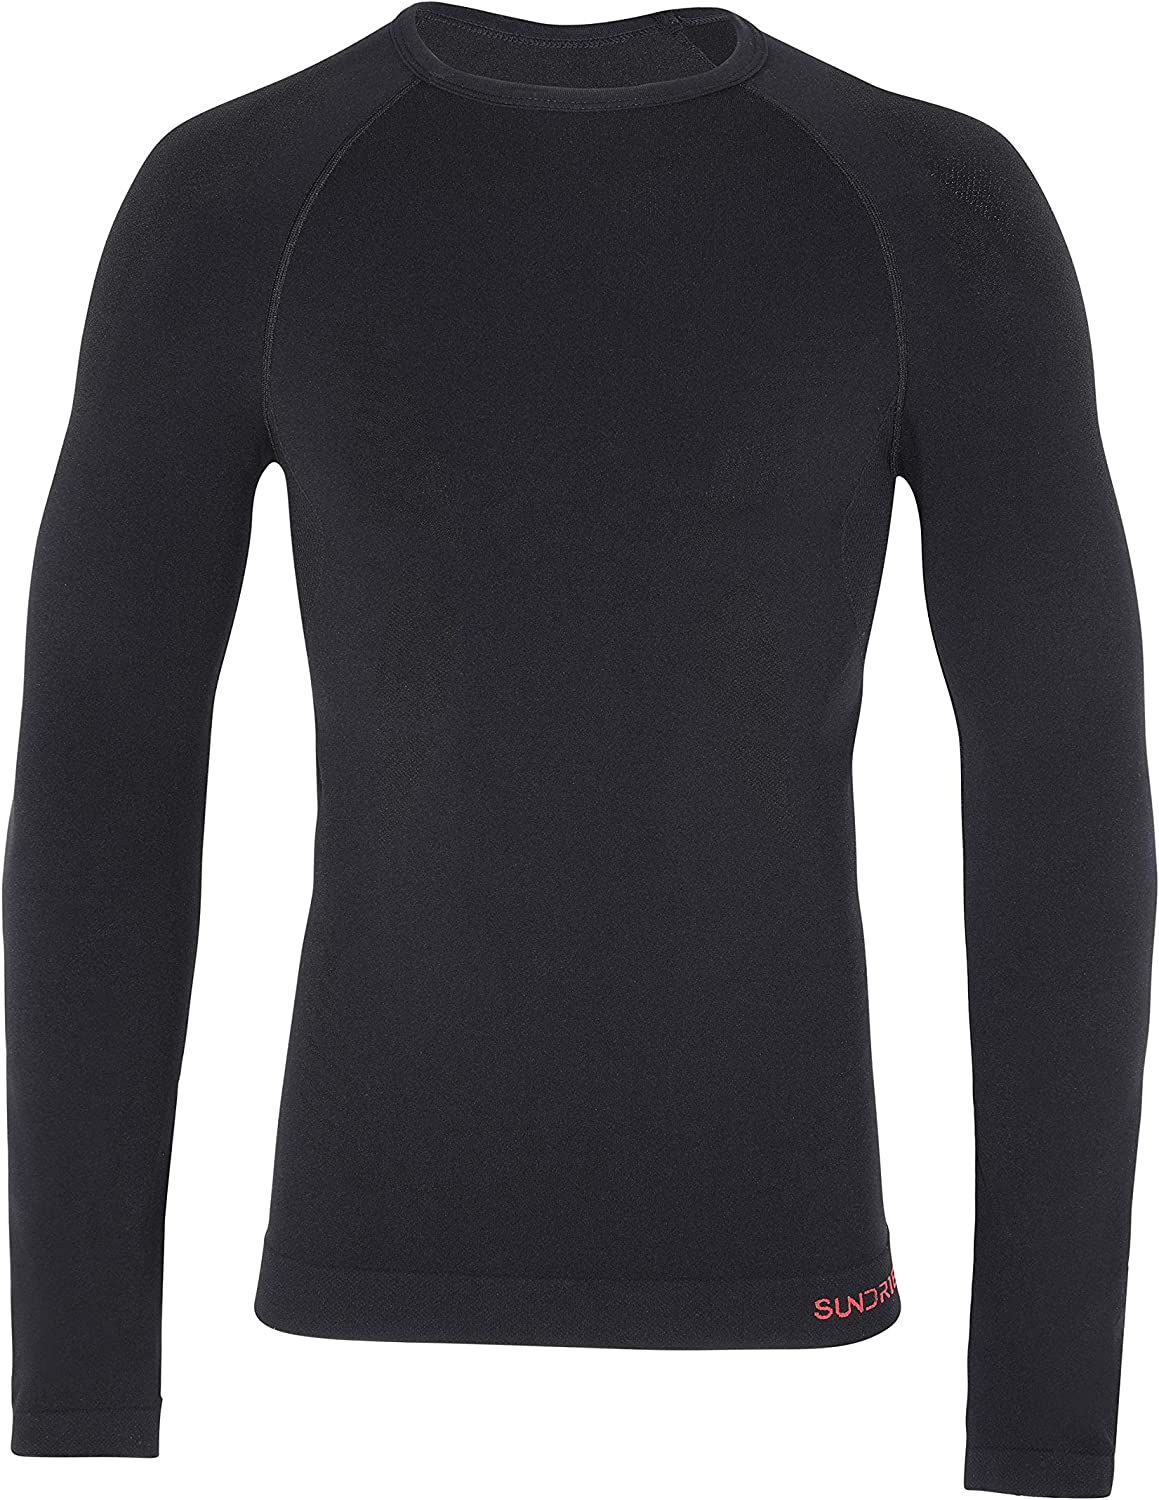 Sundried Mens Compression Long Sleeve Training Top Base Layer for Gym Running Bodybuilding Fitness Wear